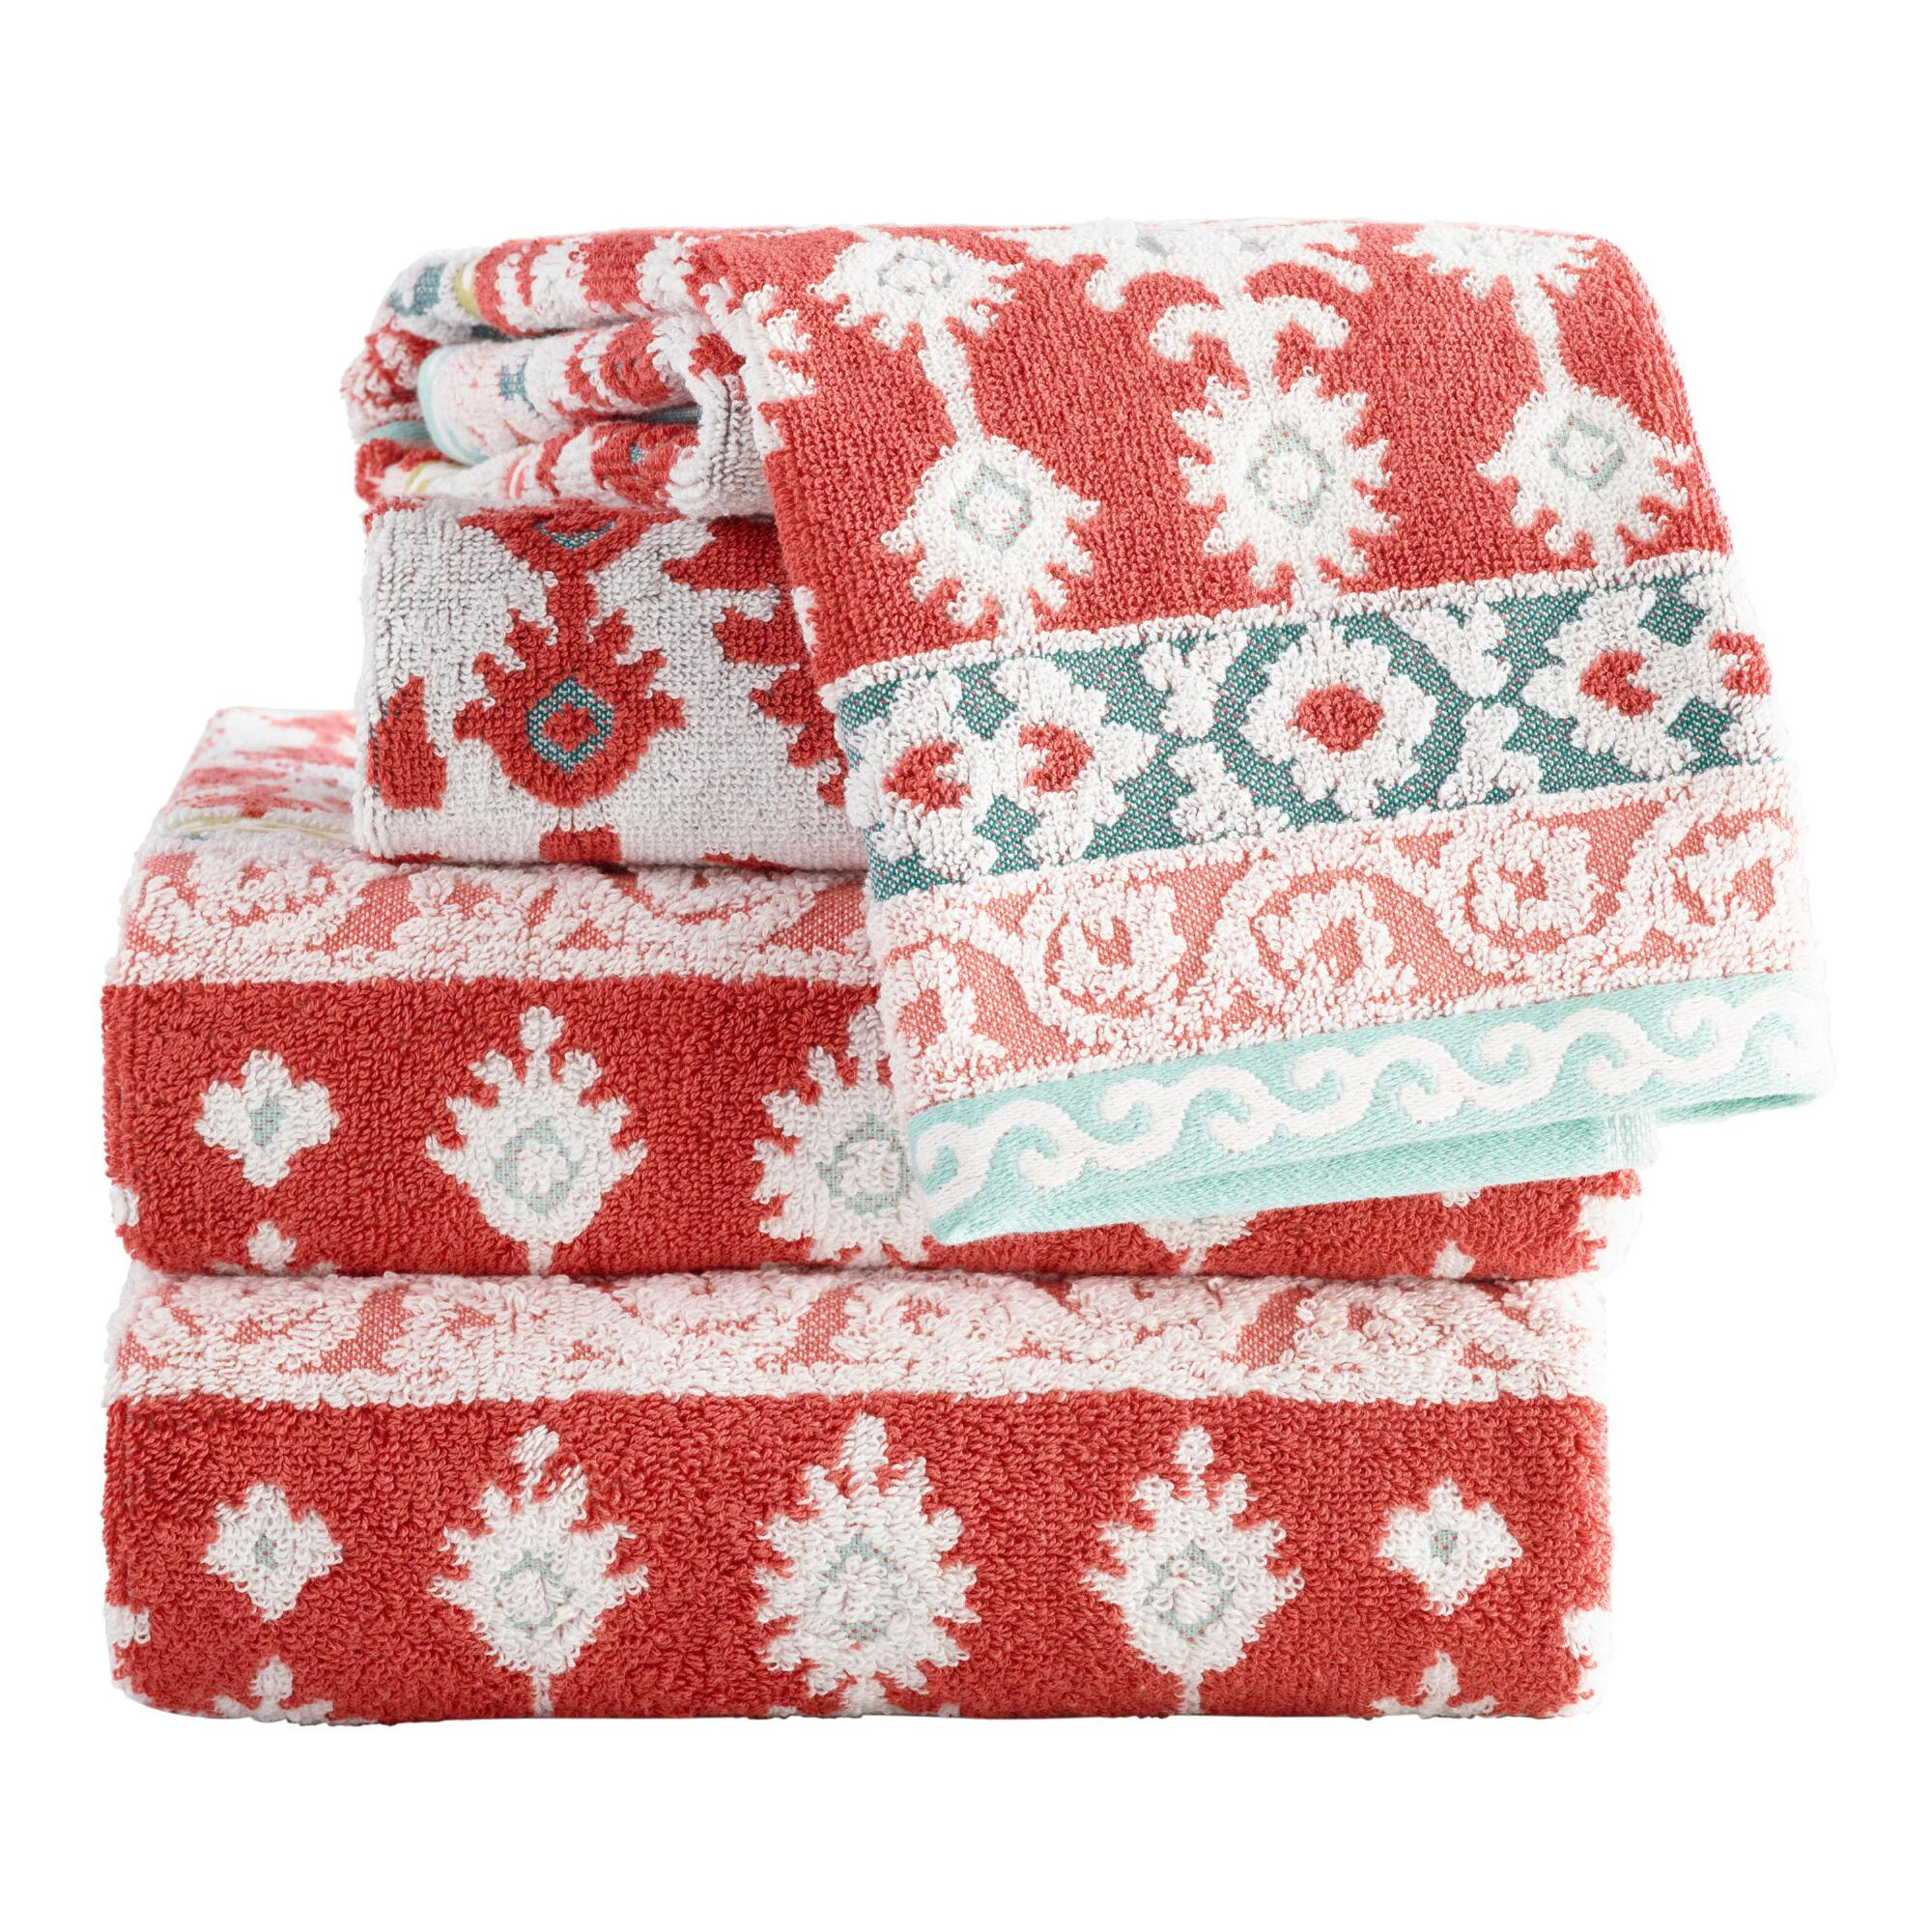 Coral and Aqua Ikat Miriam Sculpted Towel Collection by World Market